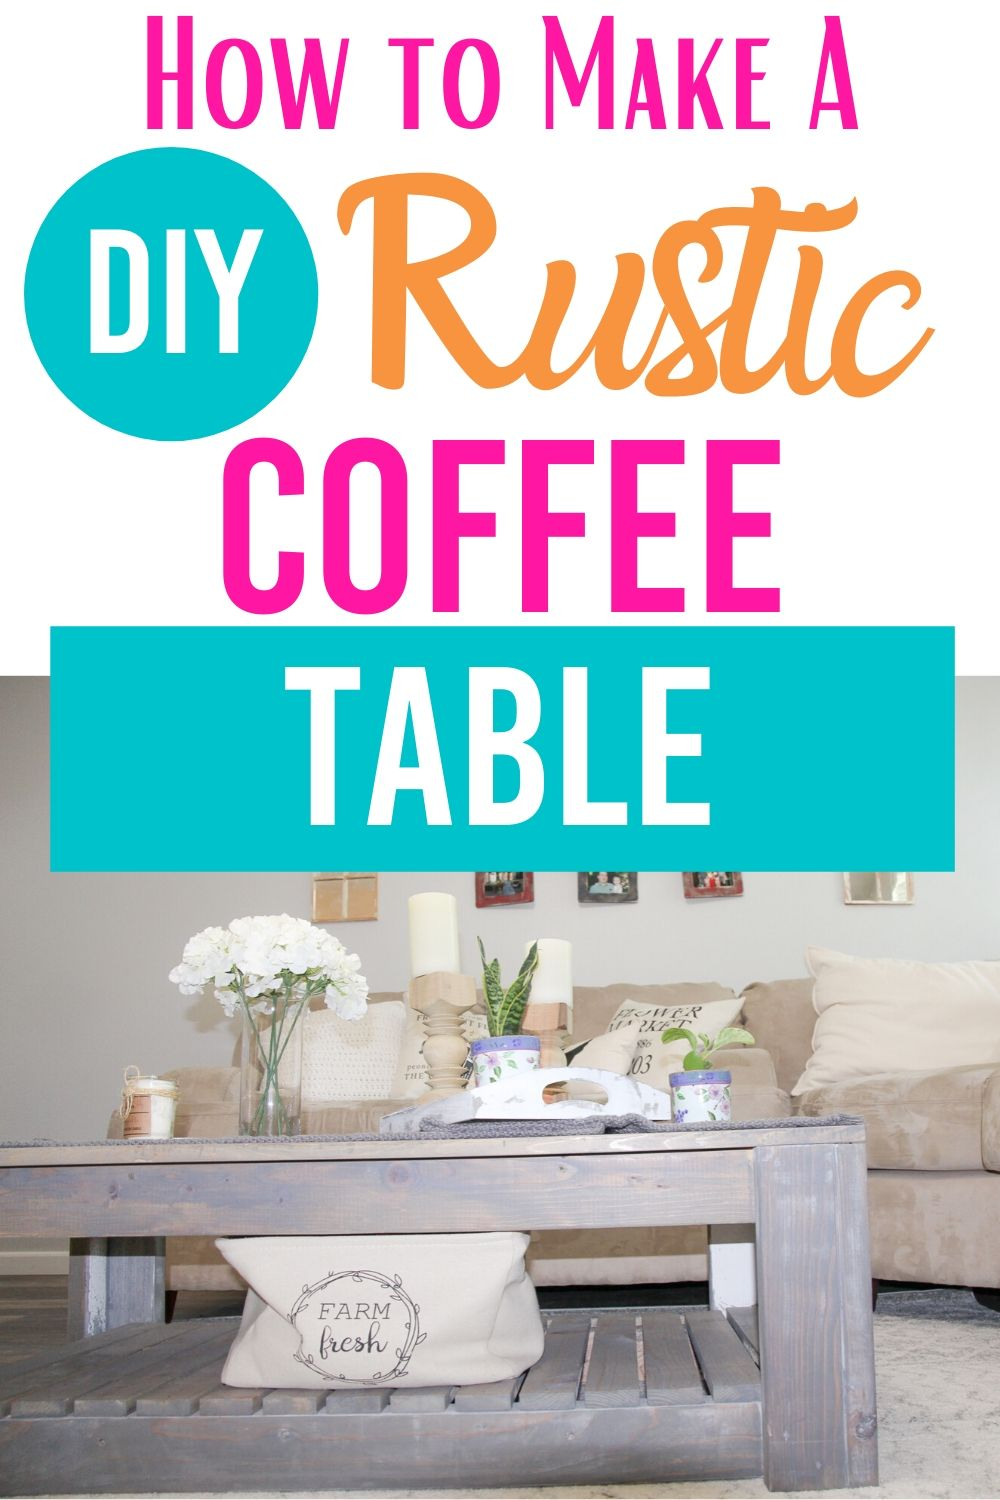 Build your own coffee table from reclaimed wood. Get a complete tutorial on DIY rustic coffee table with free plans #woodworking #diy #diyproject #coffeetable #farmhouse #rustic #rusticcoffeetable via @homebyjenn